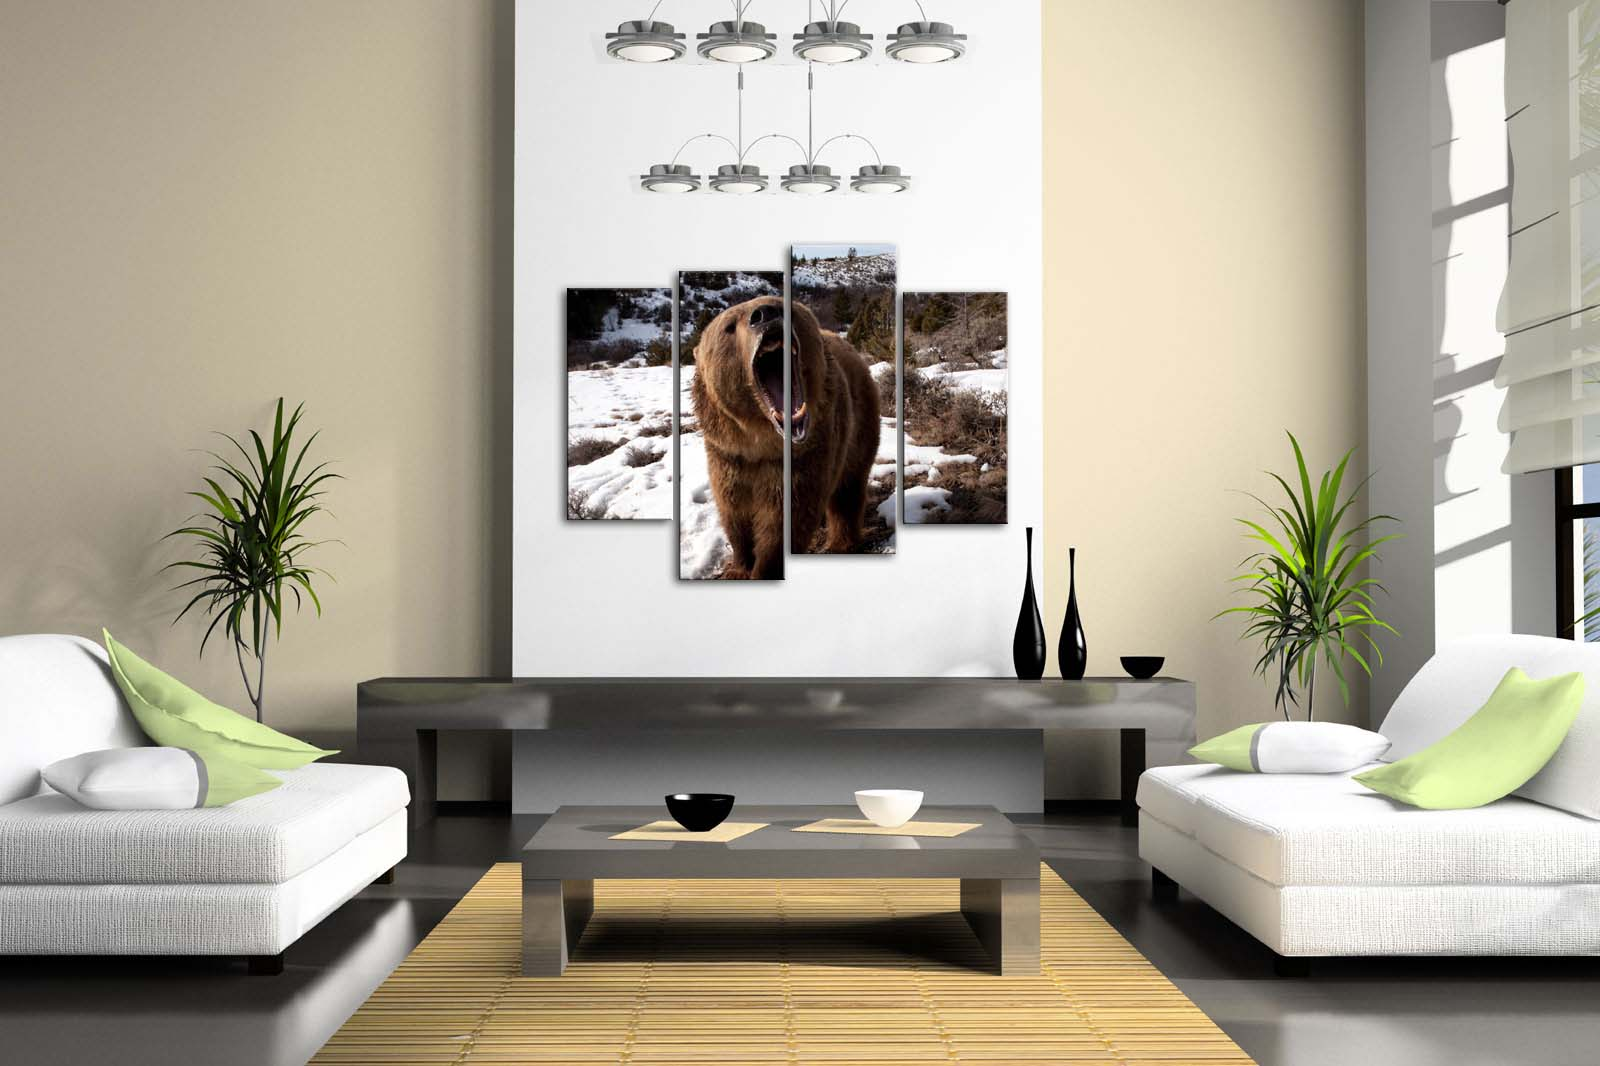 4 Pics Framed Wall Art Picture Bear Snowfield Grass Tree Canvas Print Animal Modern Posters With Wooden Frames For Decor - 2